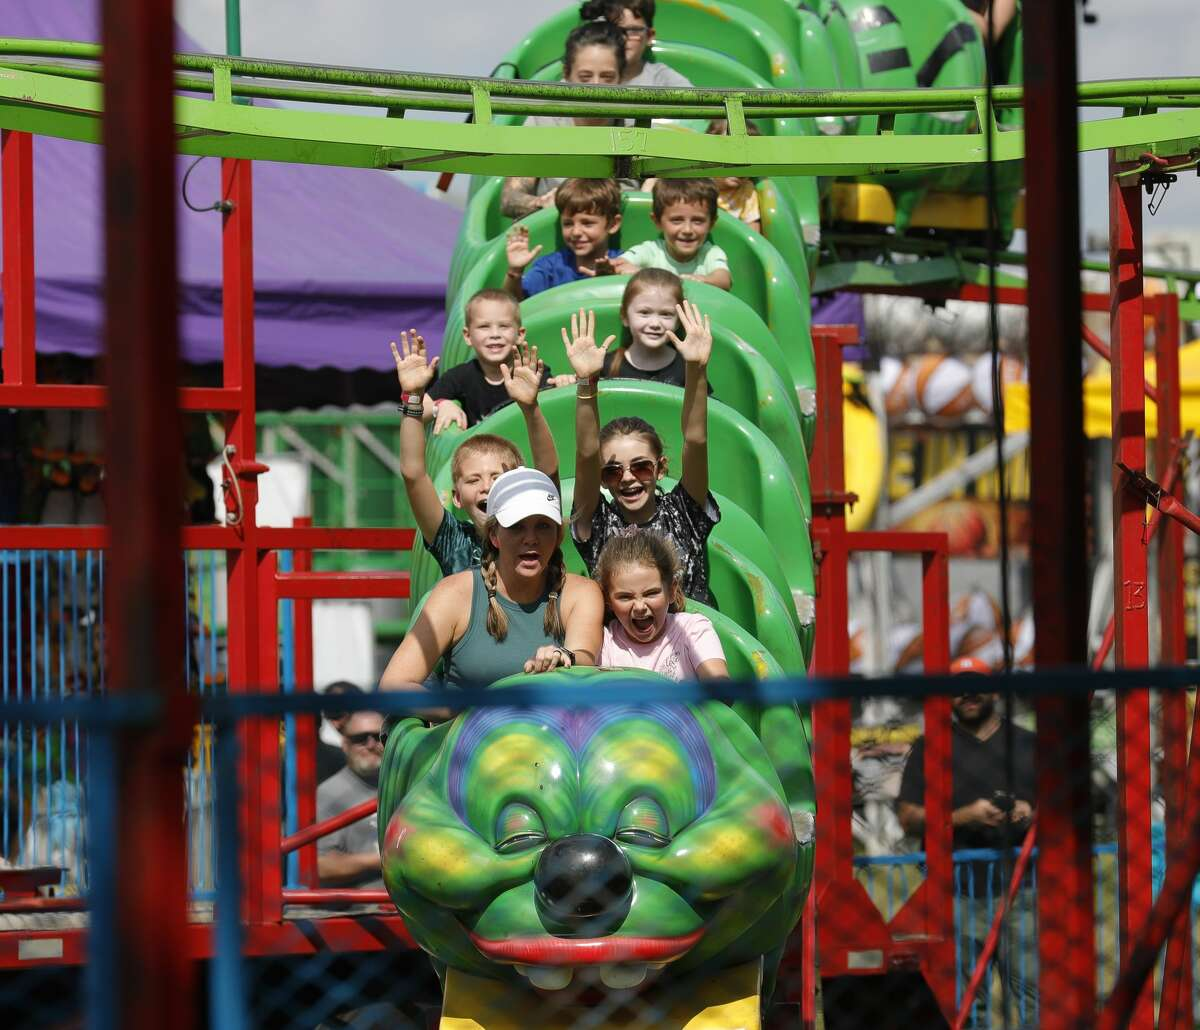 Sarah May, left, scream as she rides the Wacky Worm with her daughter, Eva, during the annual Conroe Cajun Catfish Festival, Saturday, Oct. 9, 2021, in Conroe.